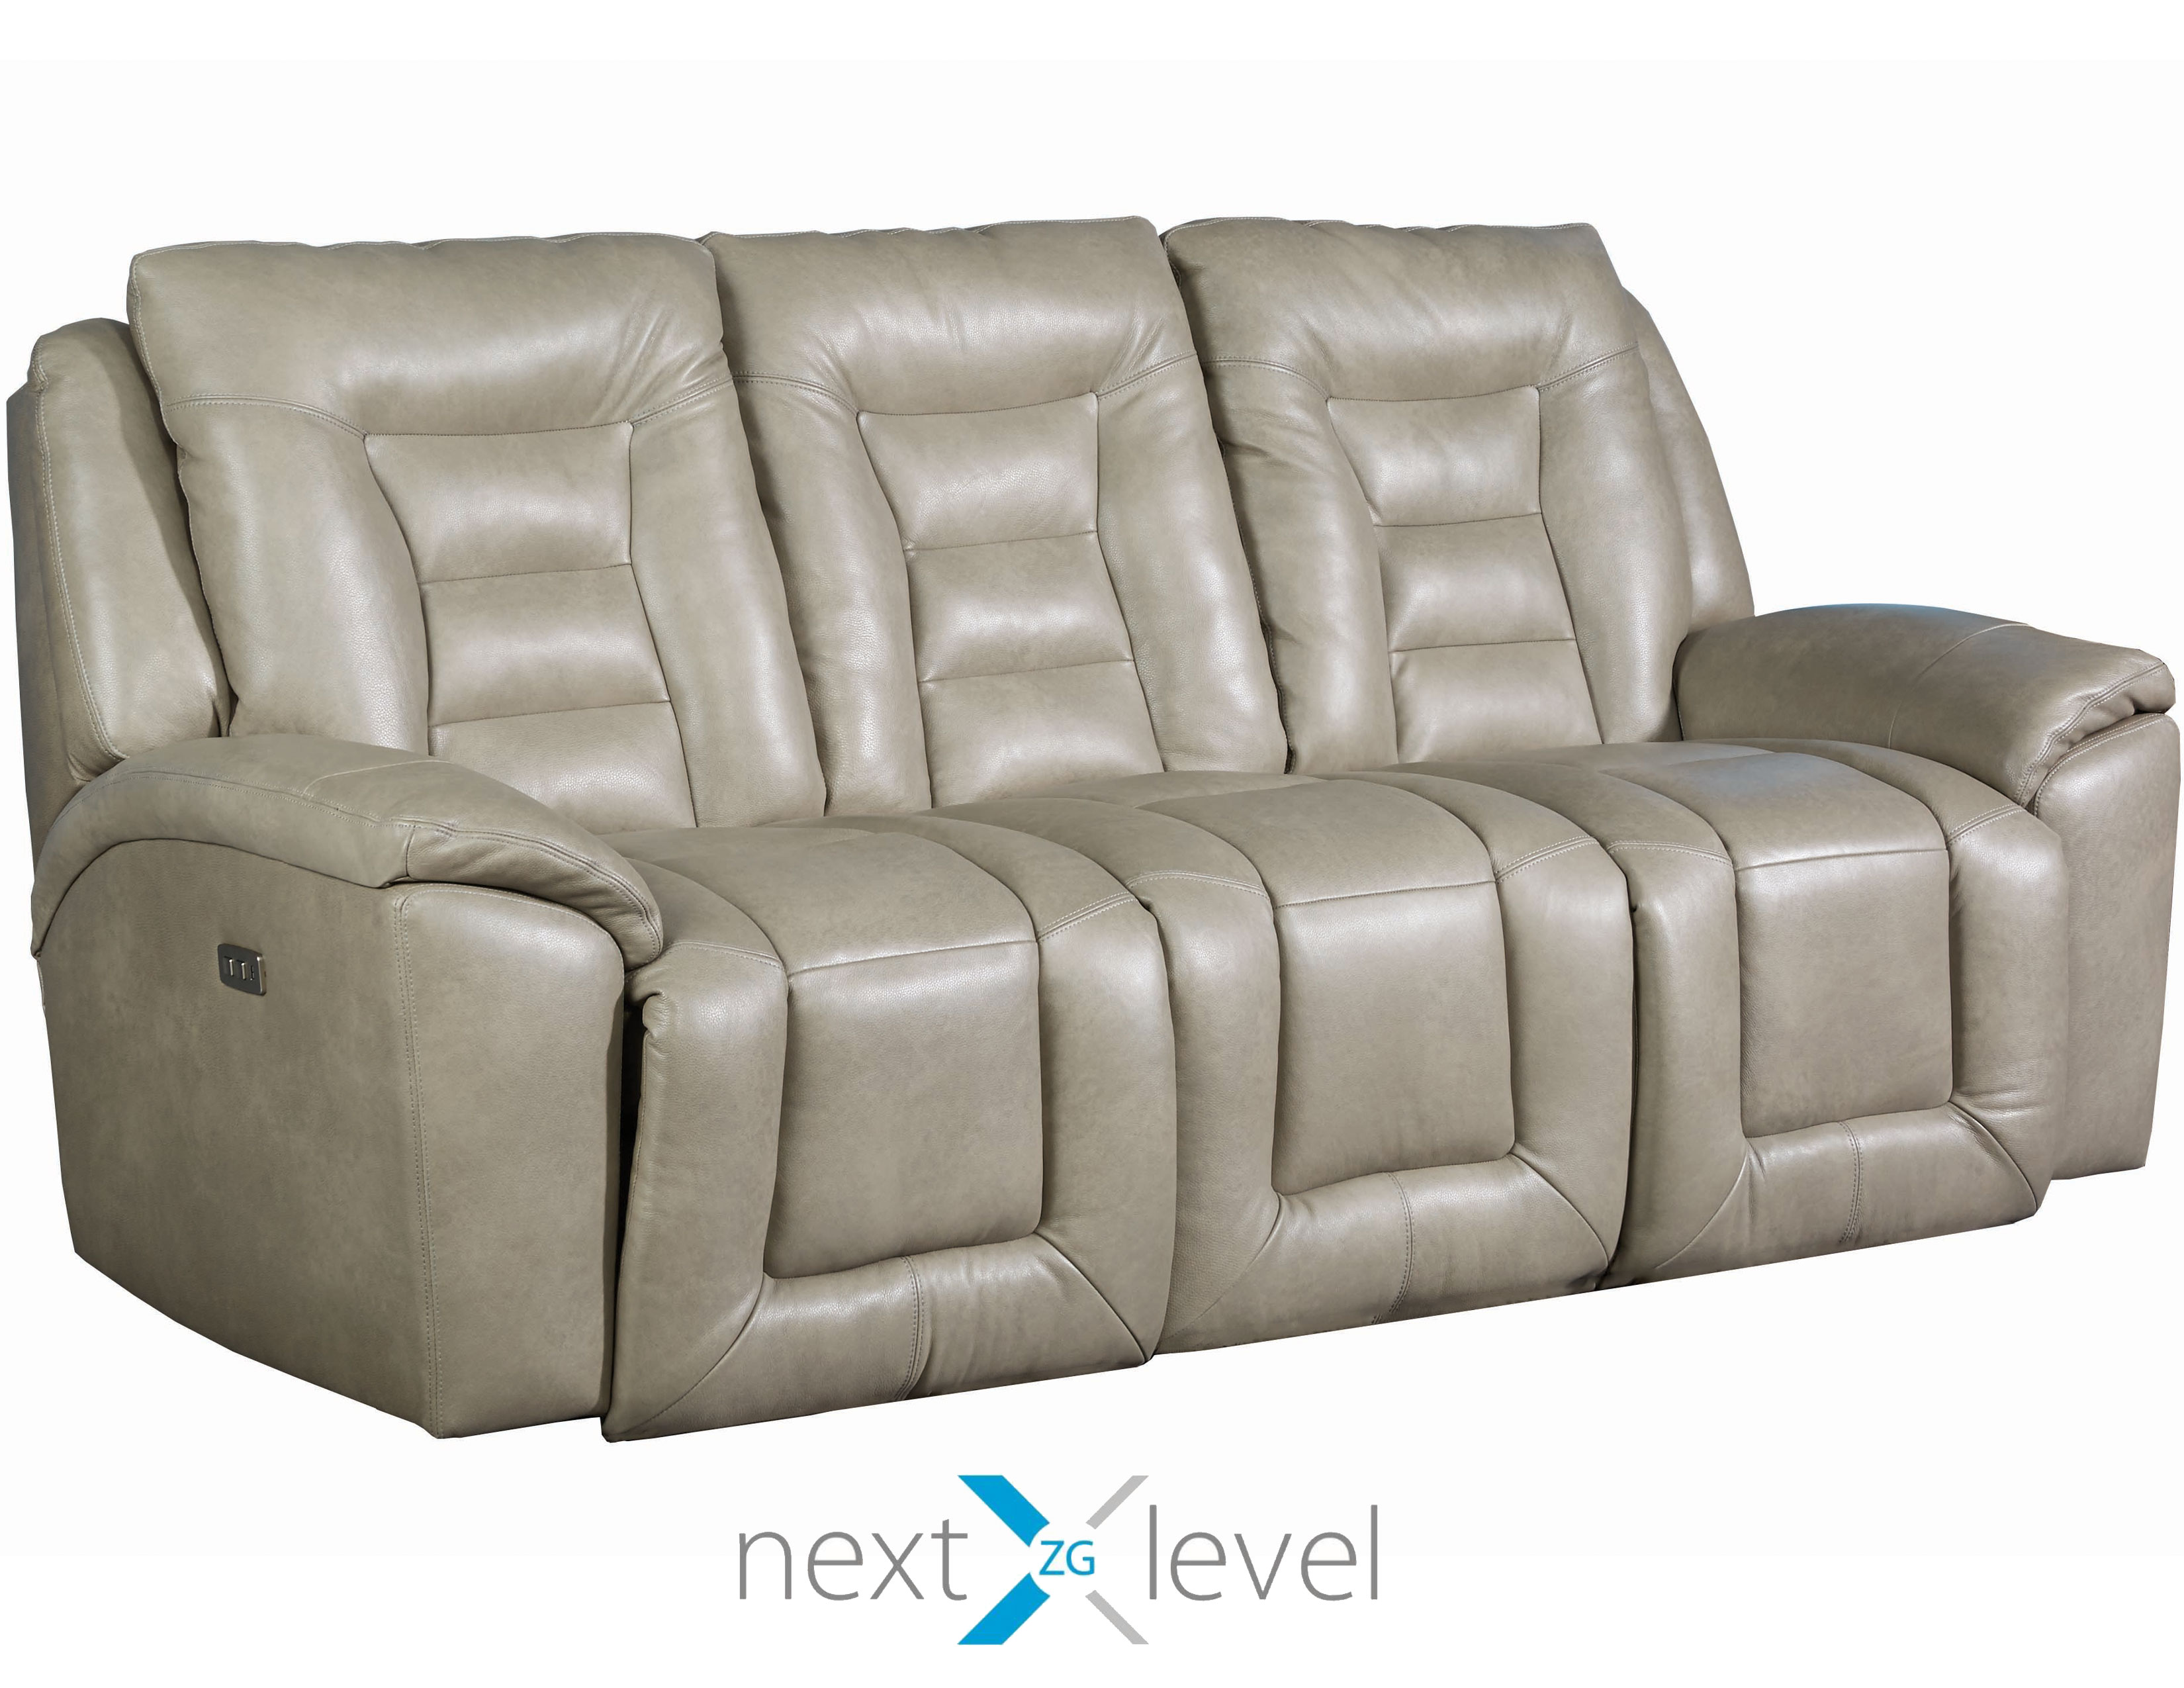 Grid Iron Next Level Zero Gravity Power Sofas And Sectionals